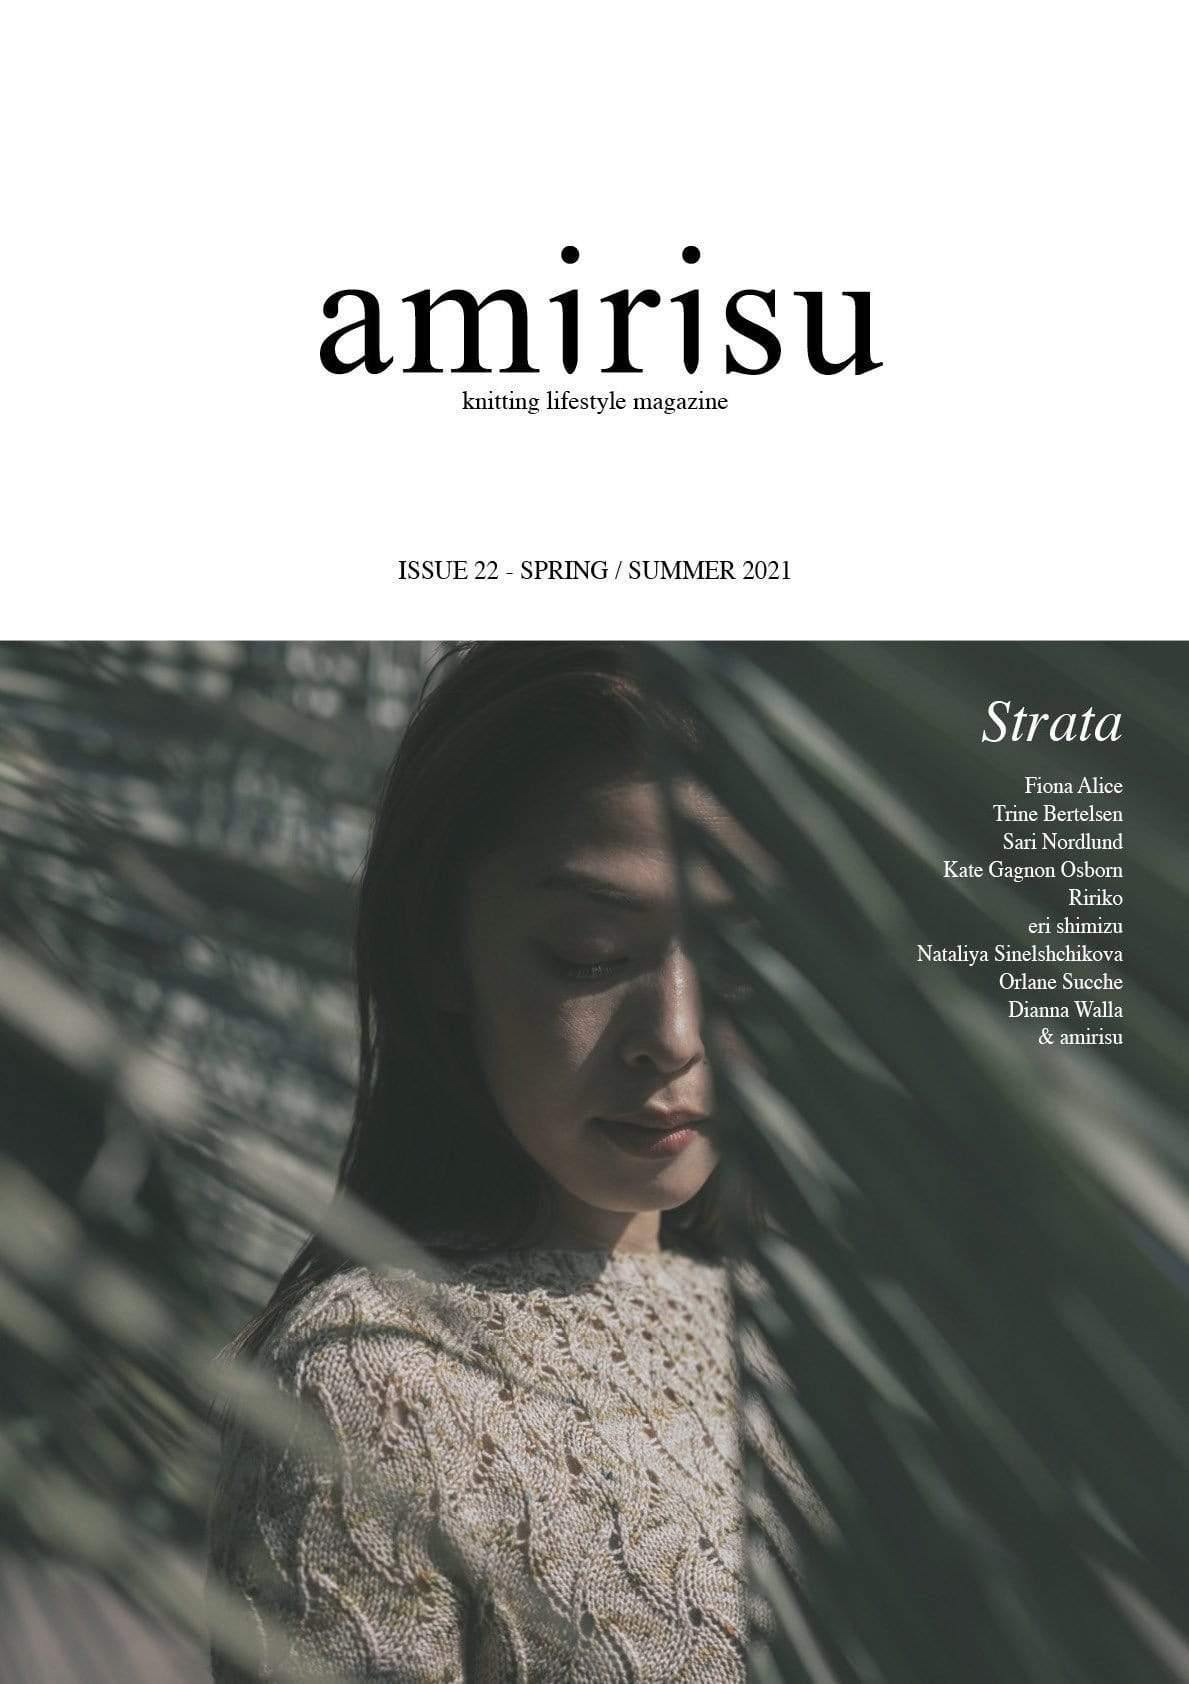 Amirisu - Issue 22 Spring/Summer 2021 Amirisu Magazine